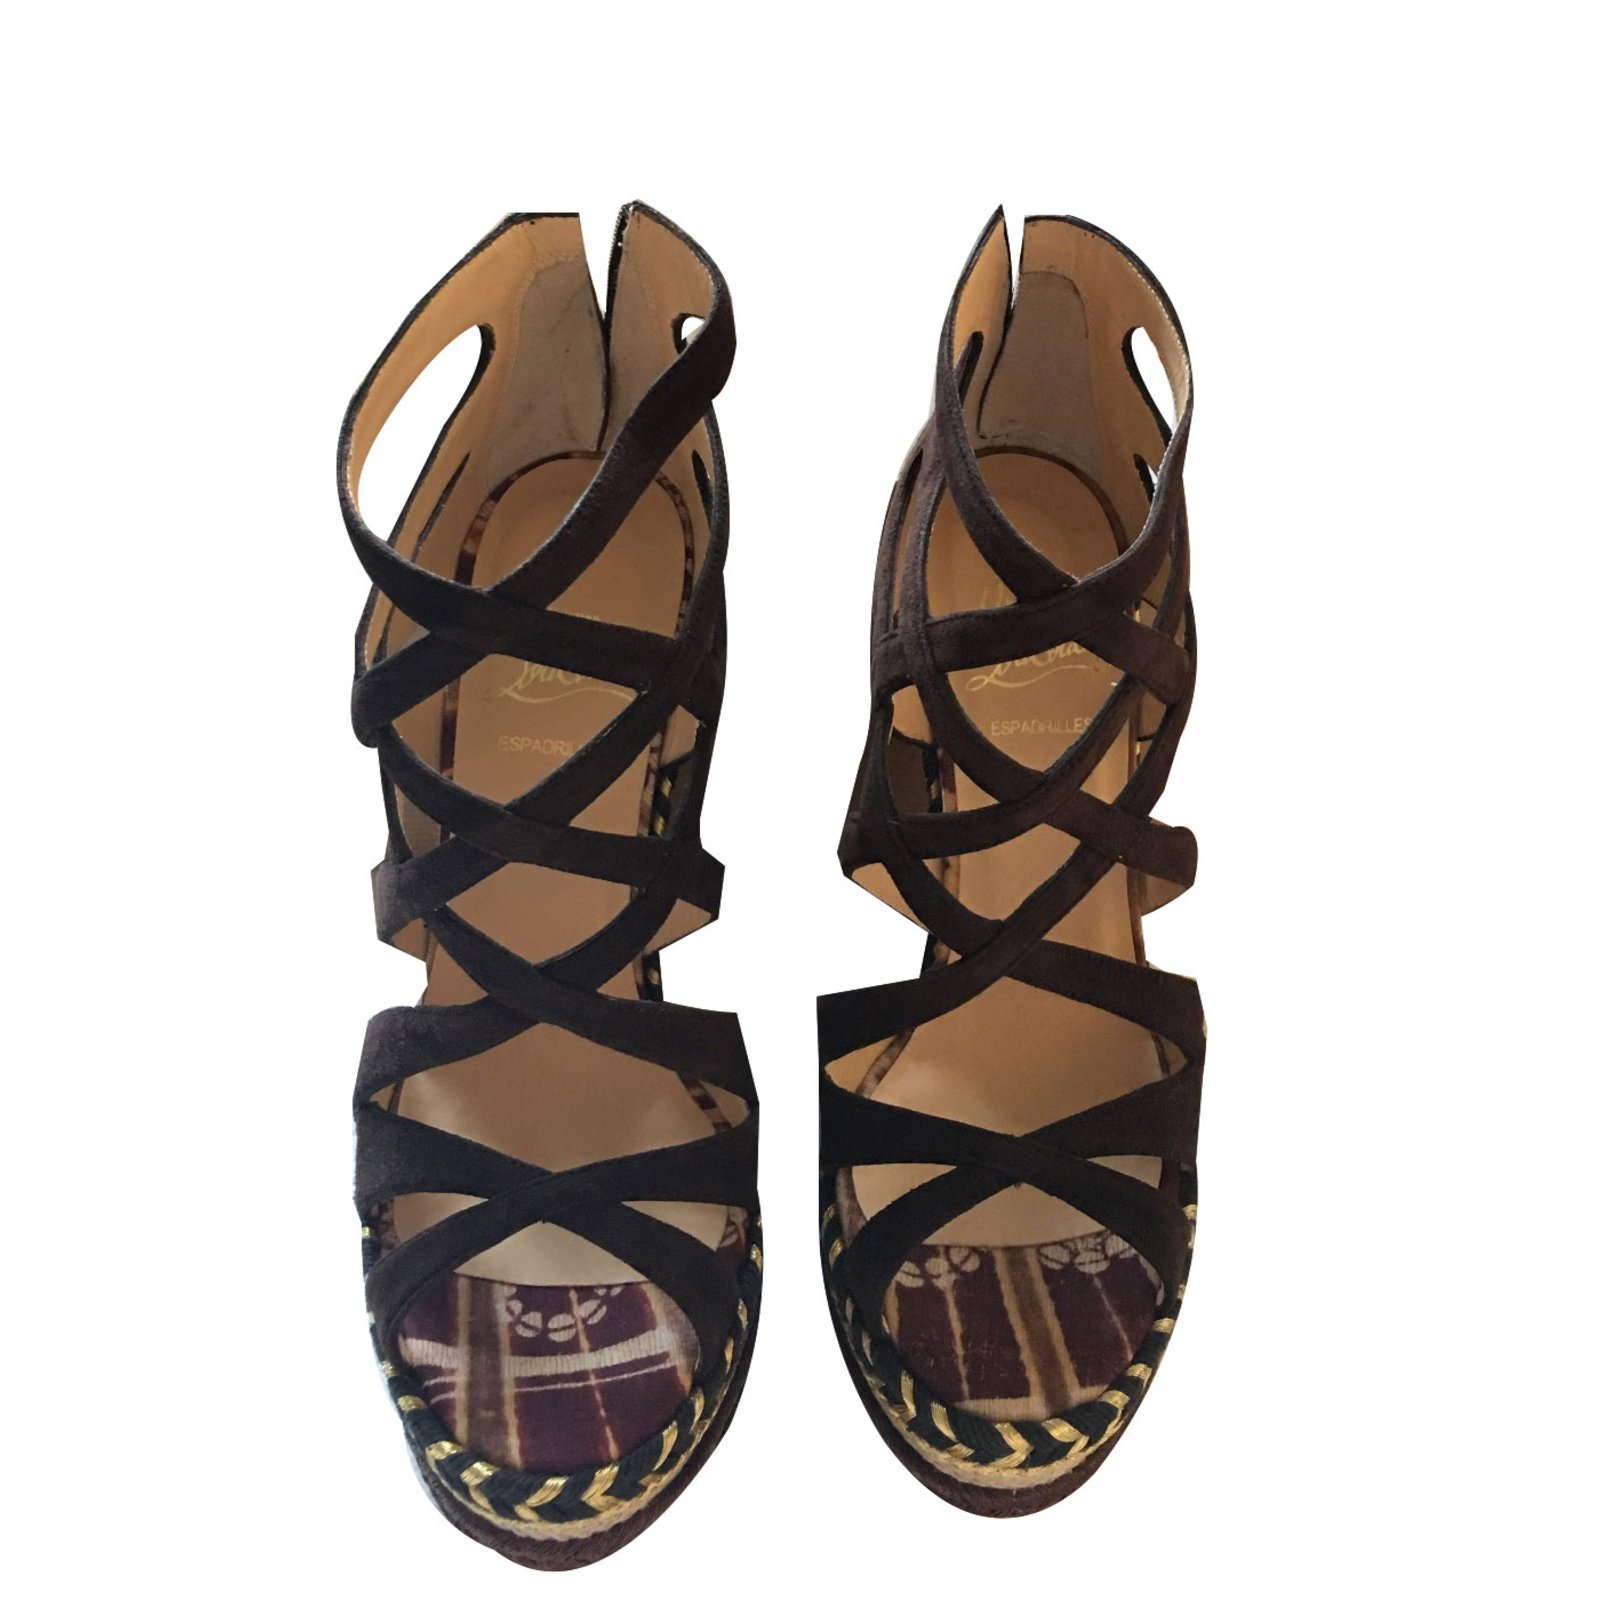 2d93c029ebbc ... authentic christian louboutin tosca sandals sandals suede brown  ref.68020 0985a 0be08